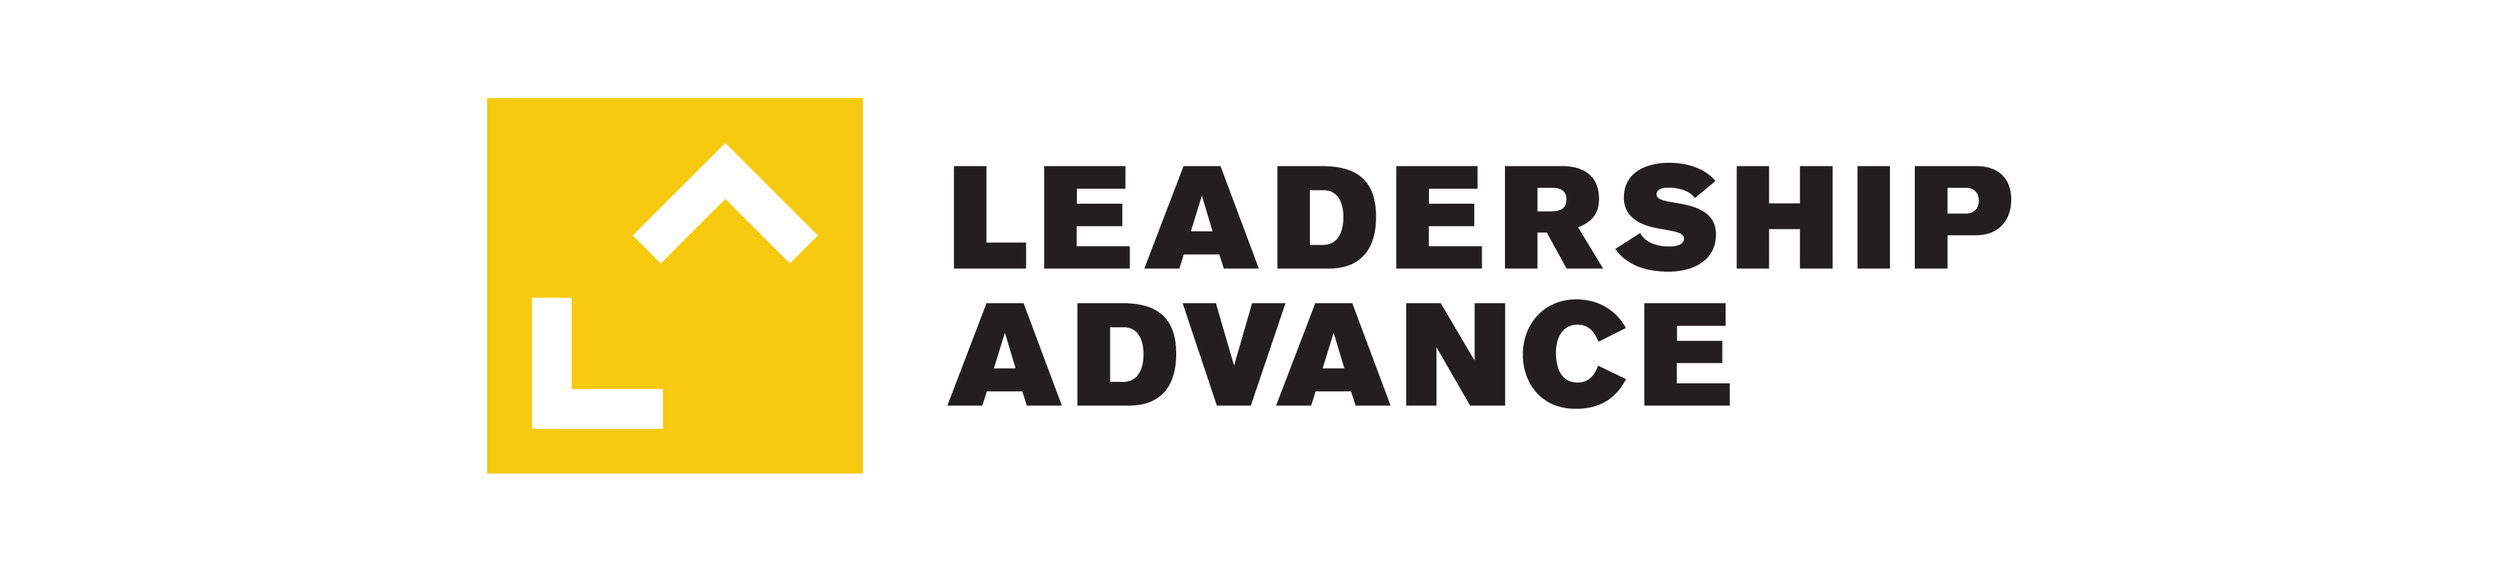 Cause_LeadershipAdvance_Logo_FULL_Website.jpg